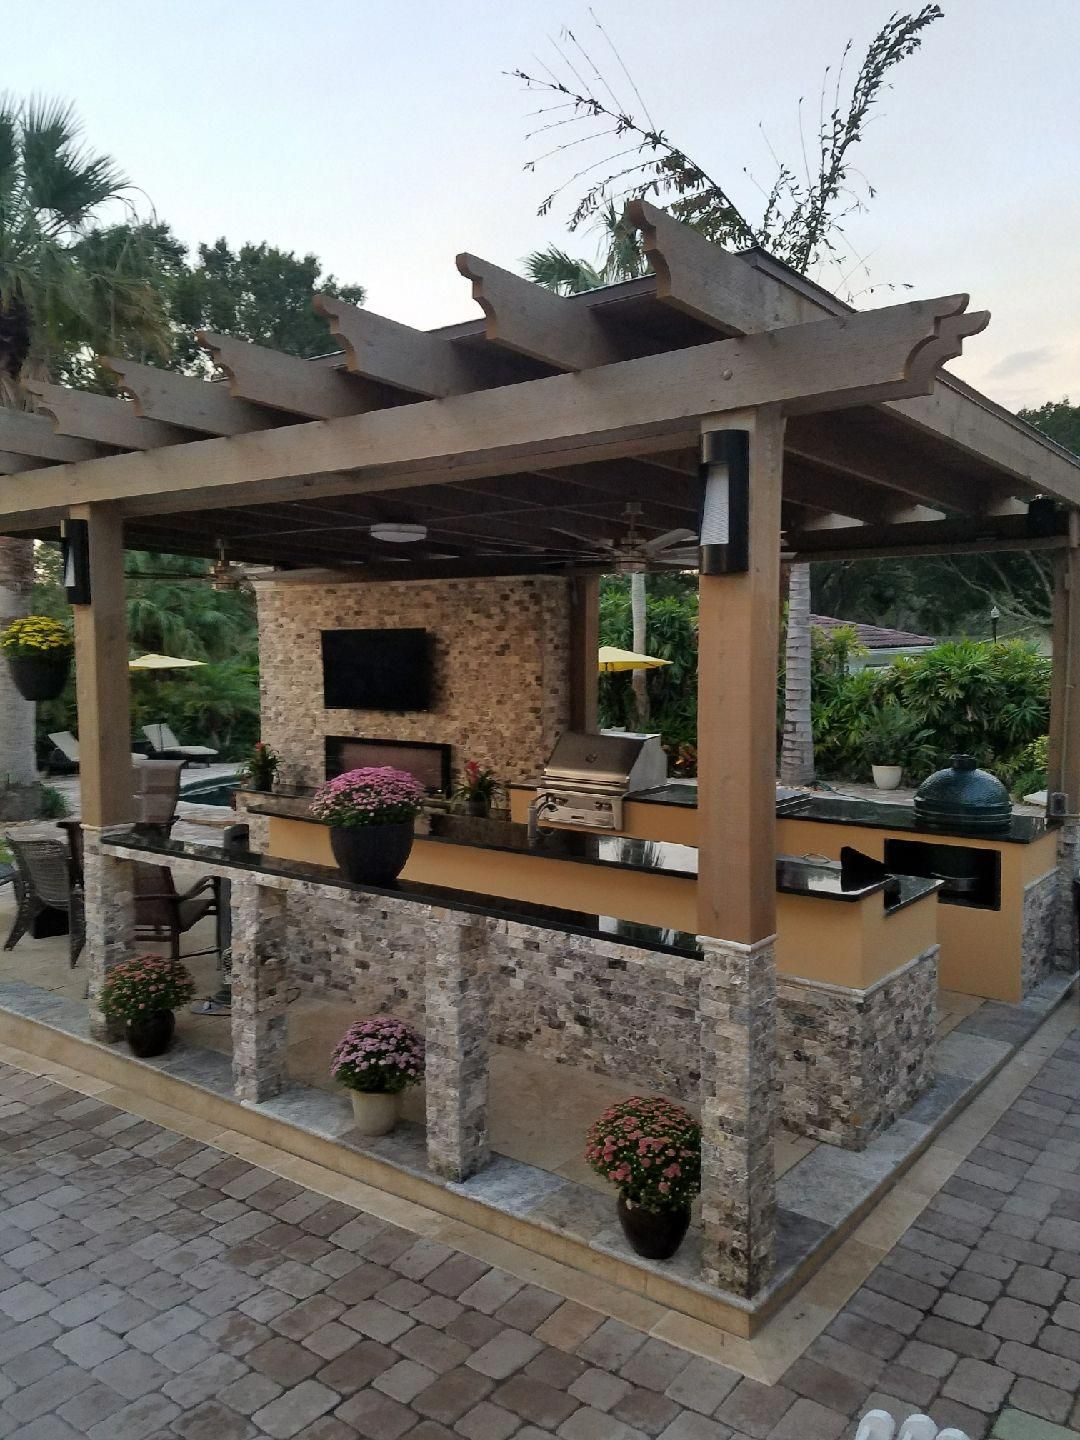 Paradise Outdoor Kitchens For Entertaining Guests Outdoor Kitchen Decor Backyard Patio Designs Outdoor Kitchen Patio